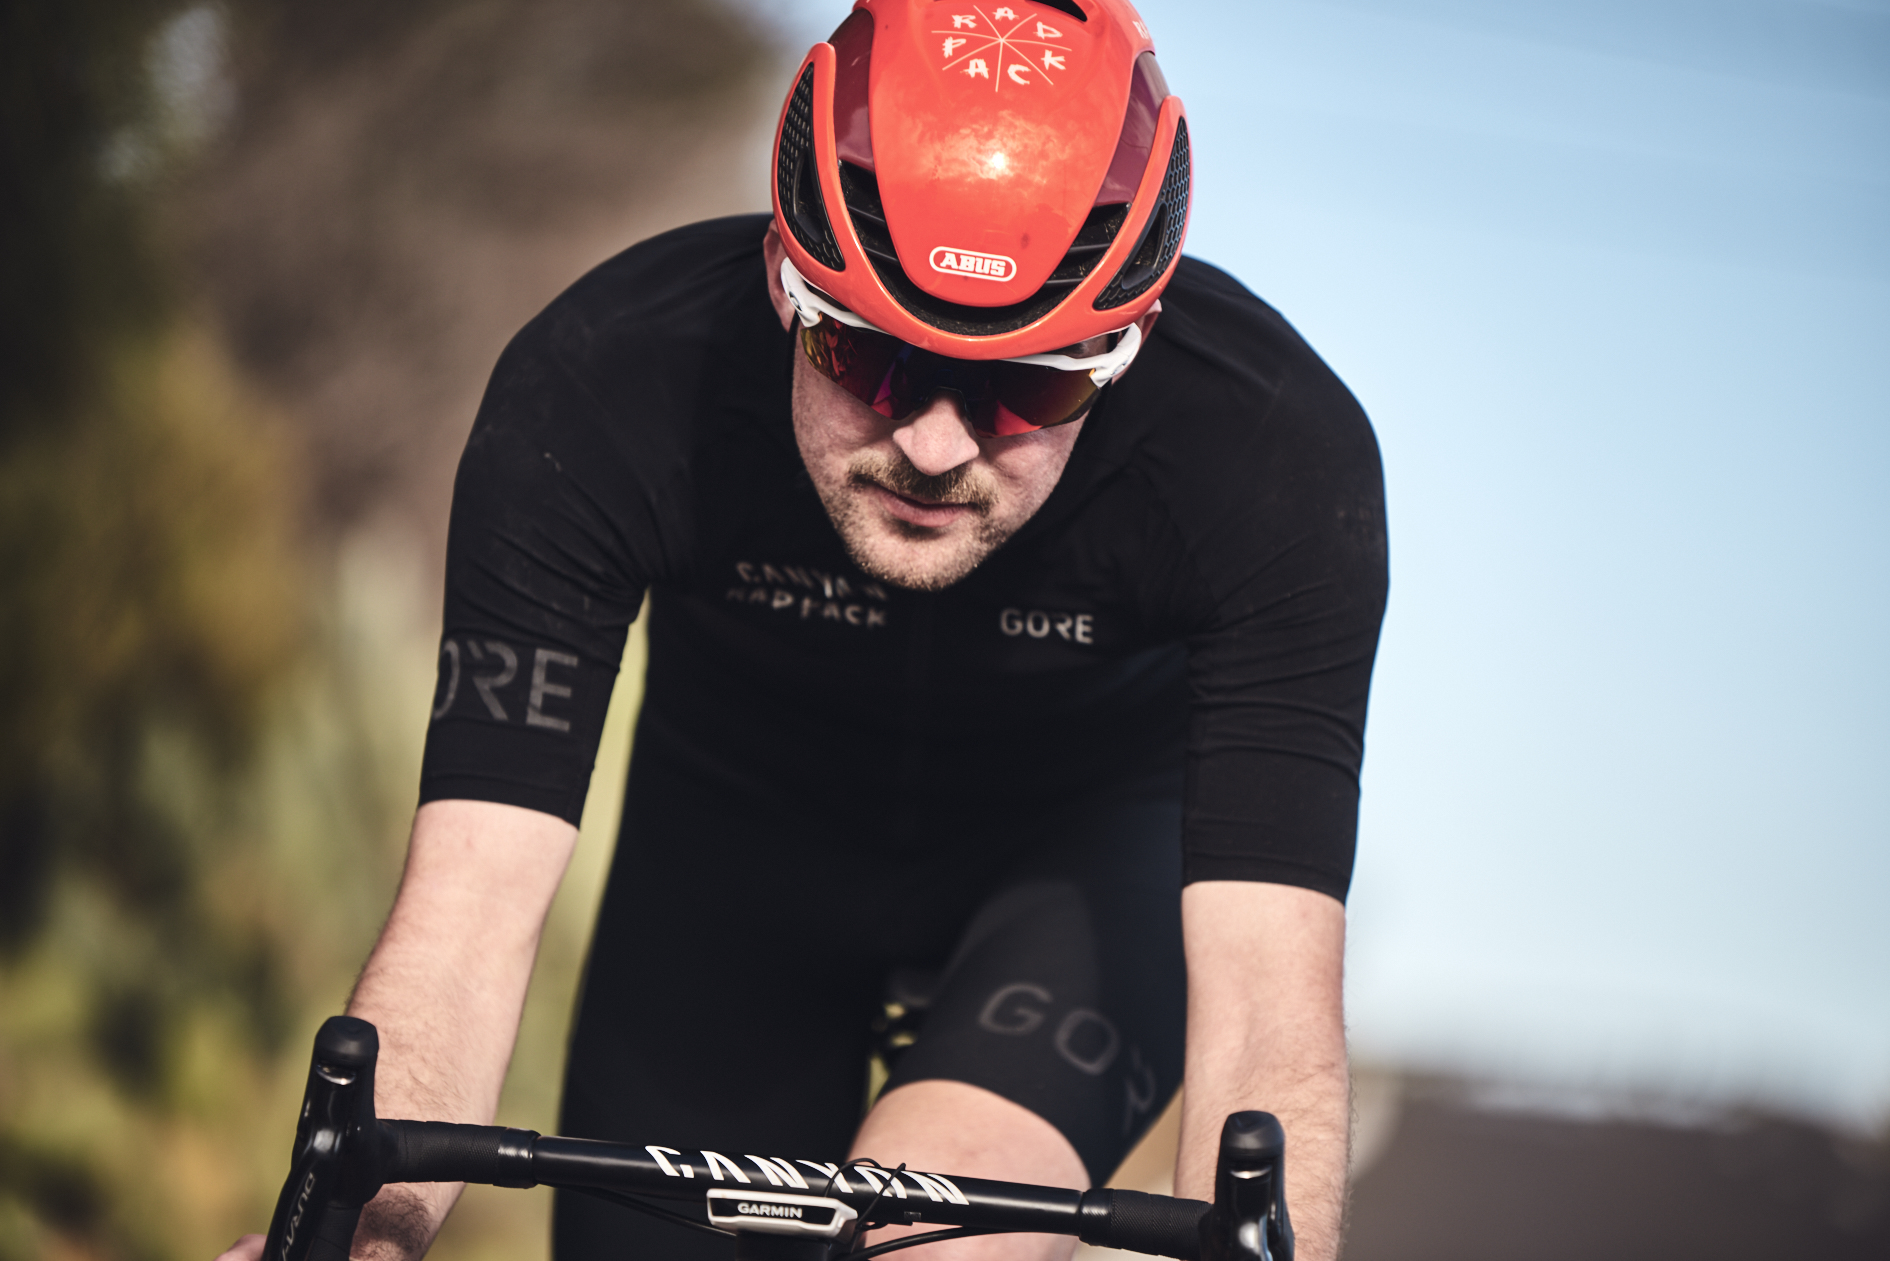 RADRACE_TNF_Feb2019_Bjoern-Reschabek_Tag1_220.jpg